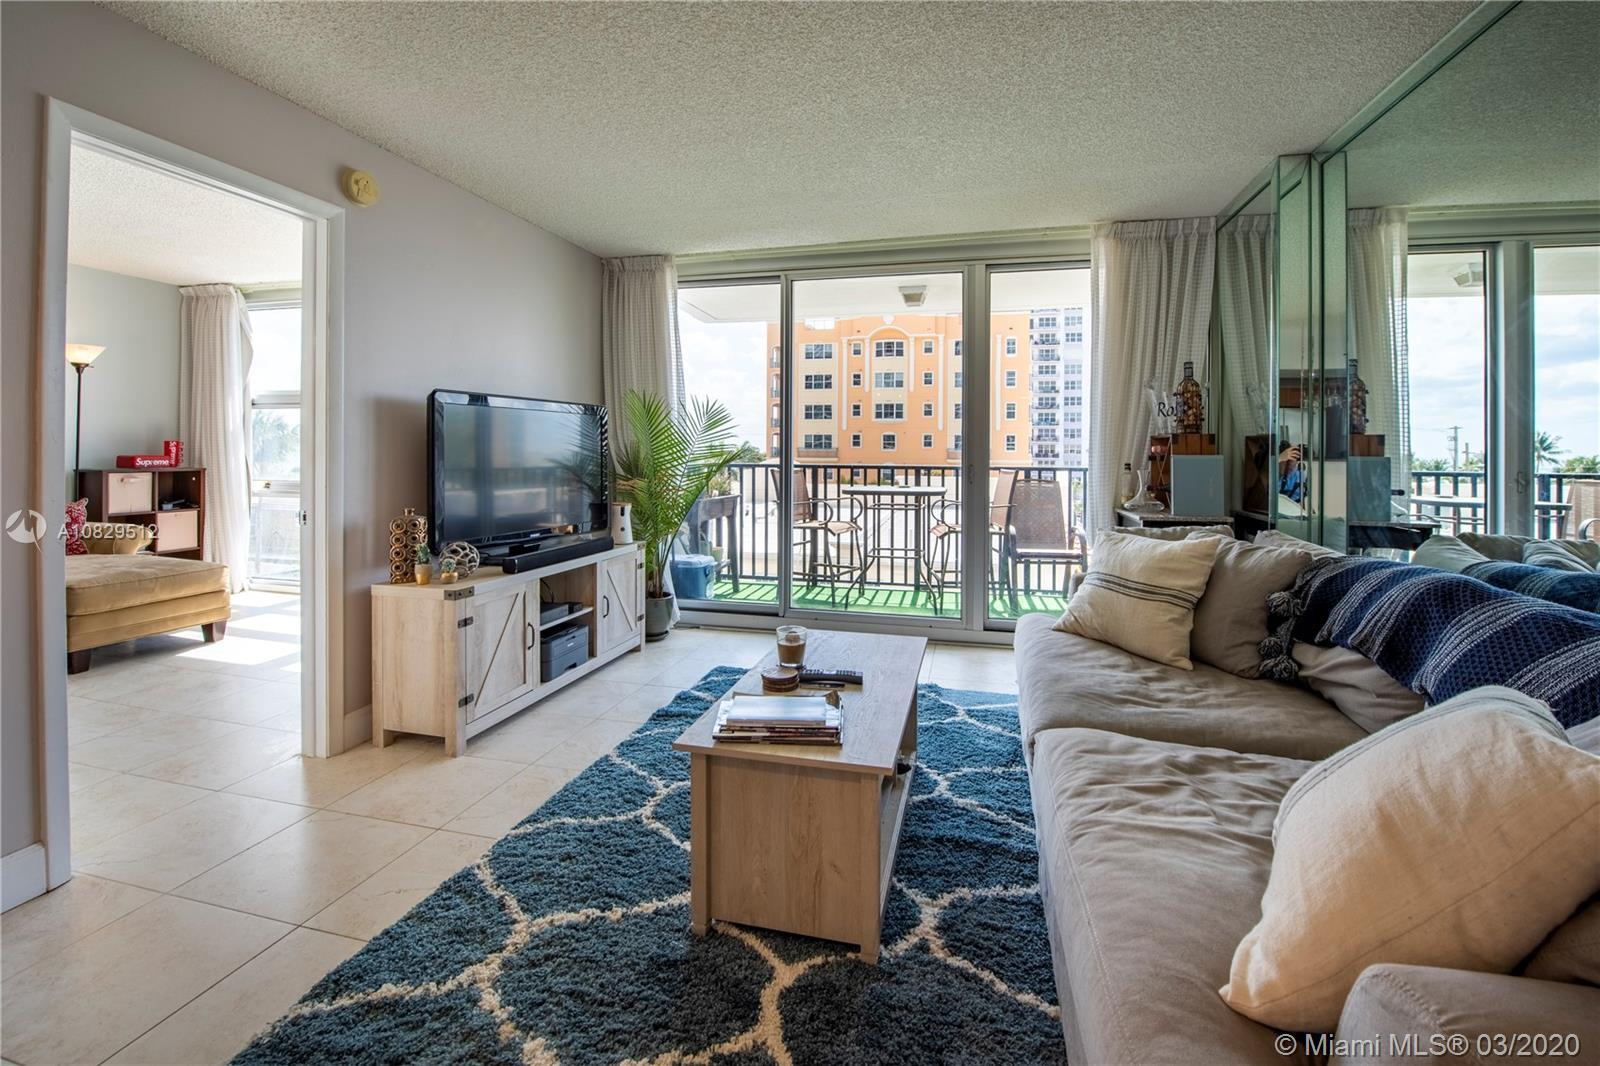 Native Realty is excited to bring to market this beautiful, remodeled, 2 bed 2 bath condo. Both bath